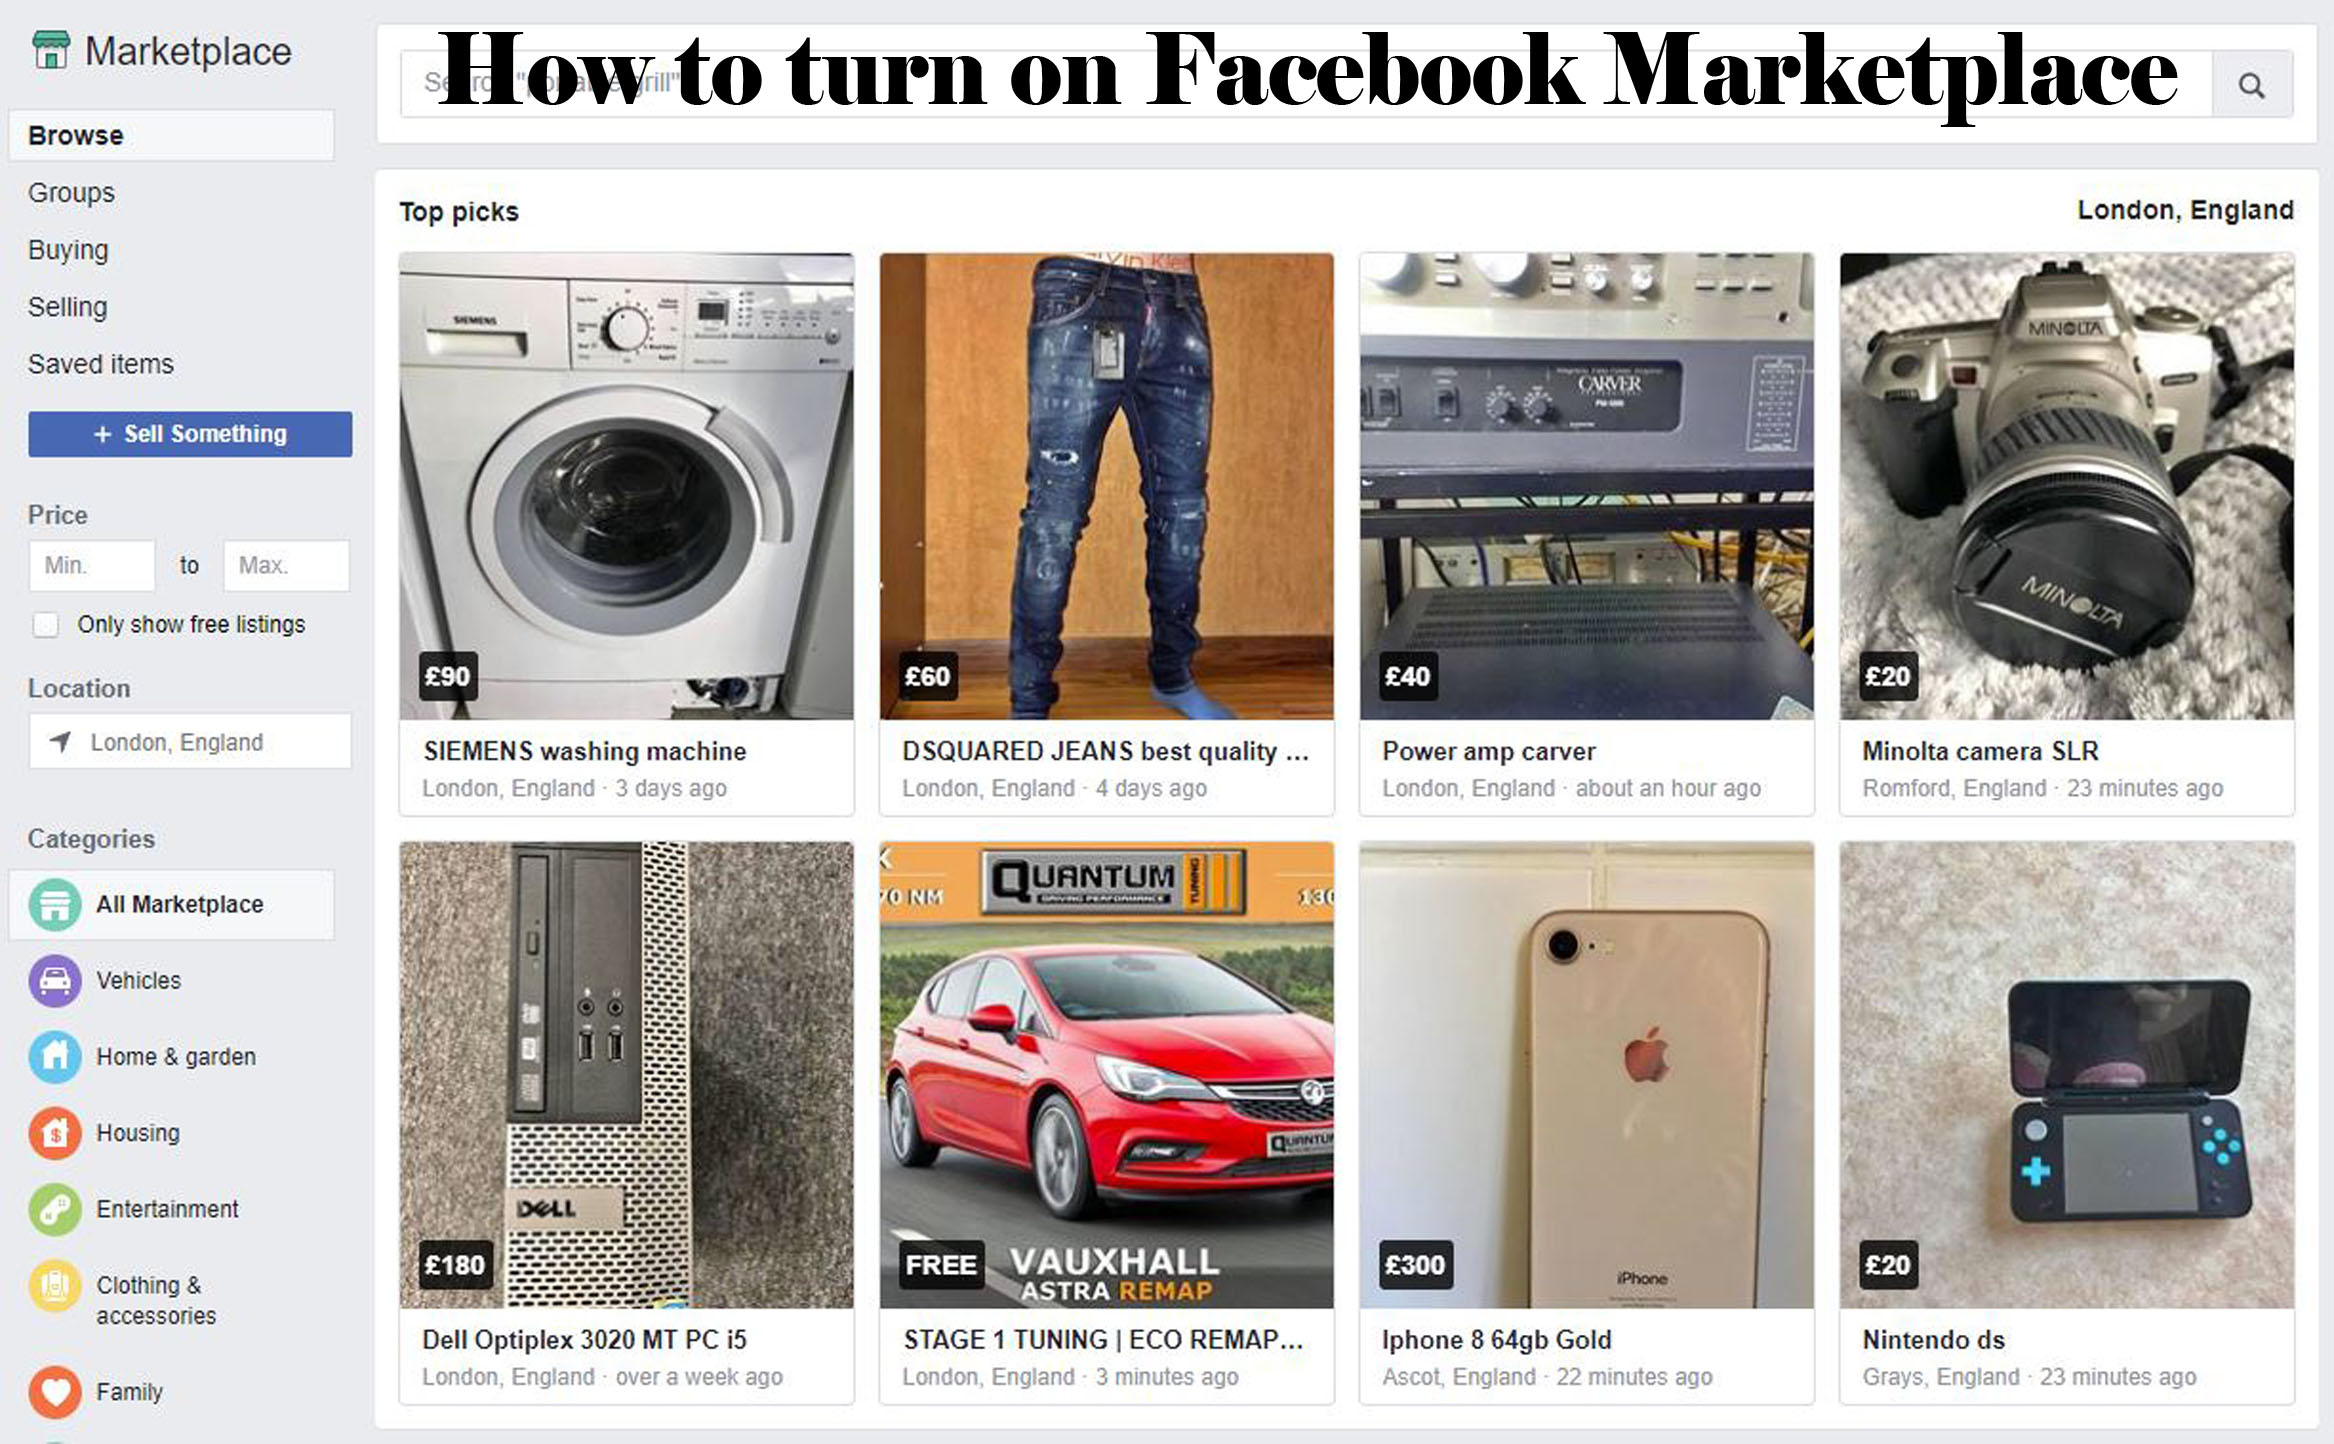 How to turn on Facebook Marketplace